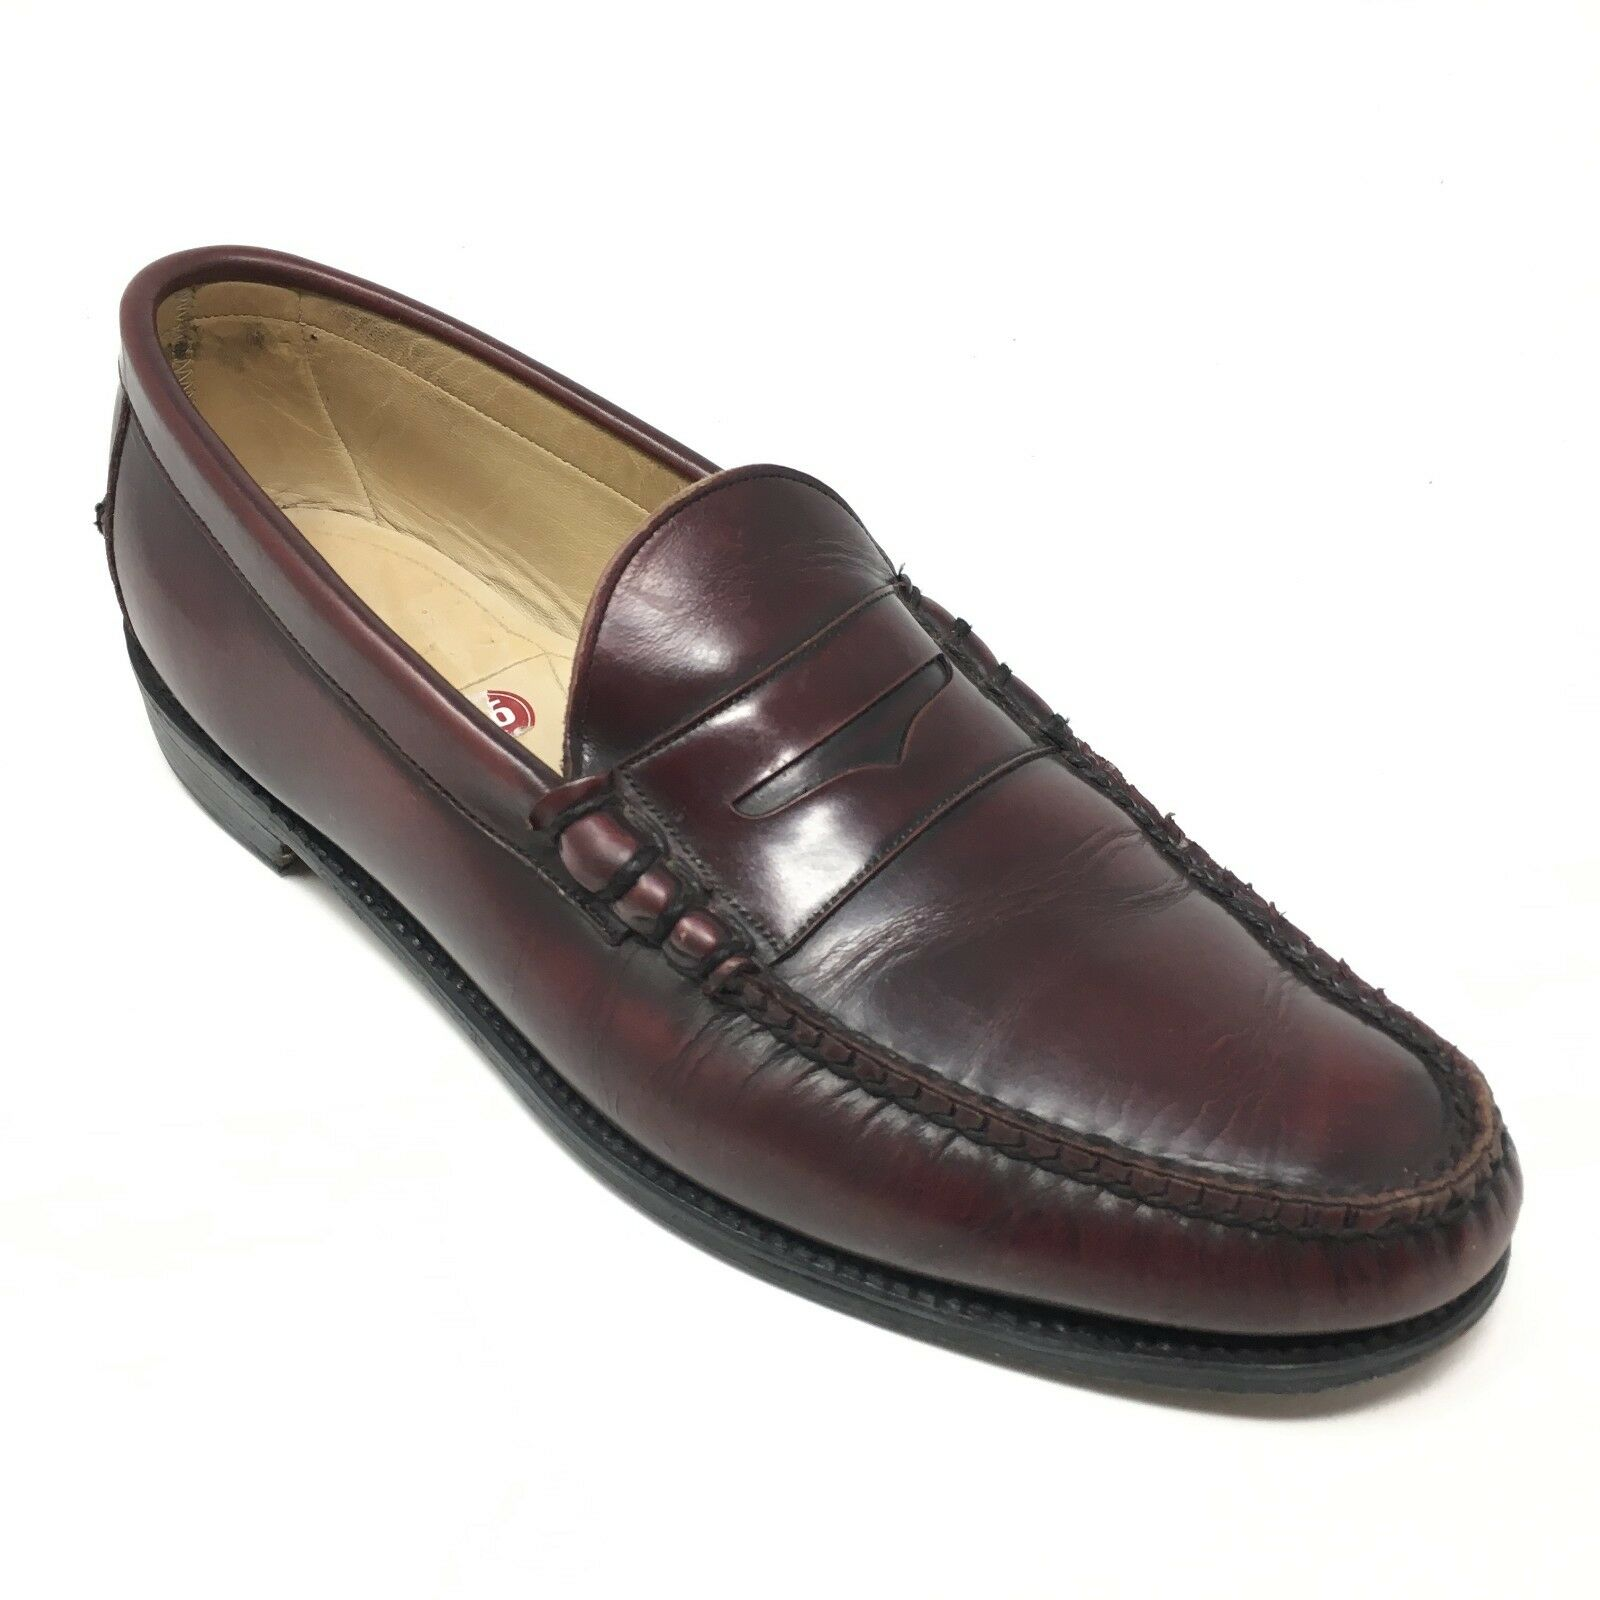 Men's Florsheim Royal Imperial Size 9.5C Loafers shoes Burgundy Made  K7